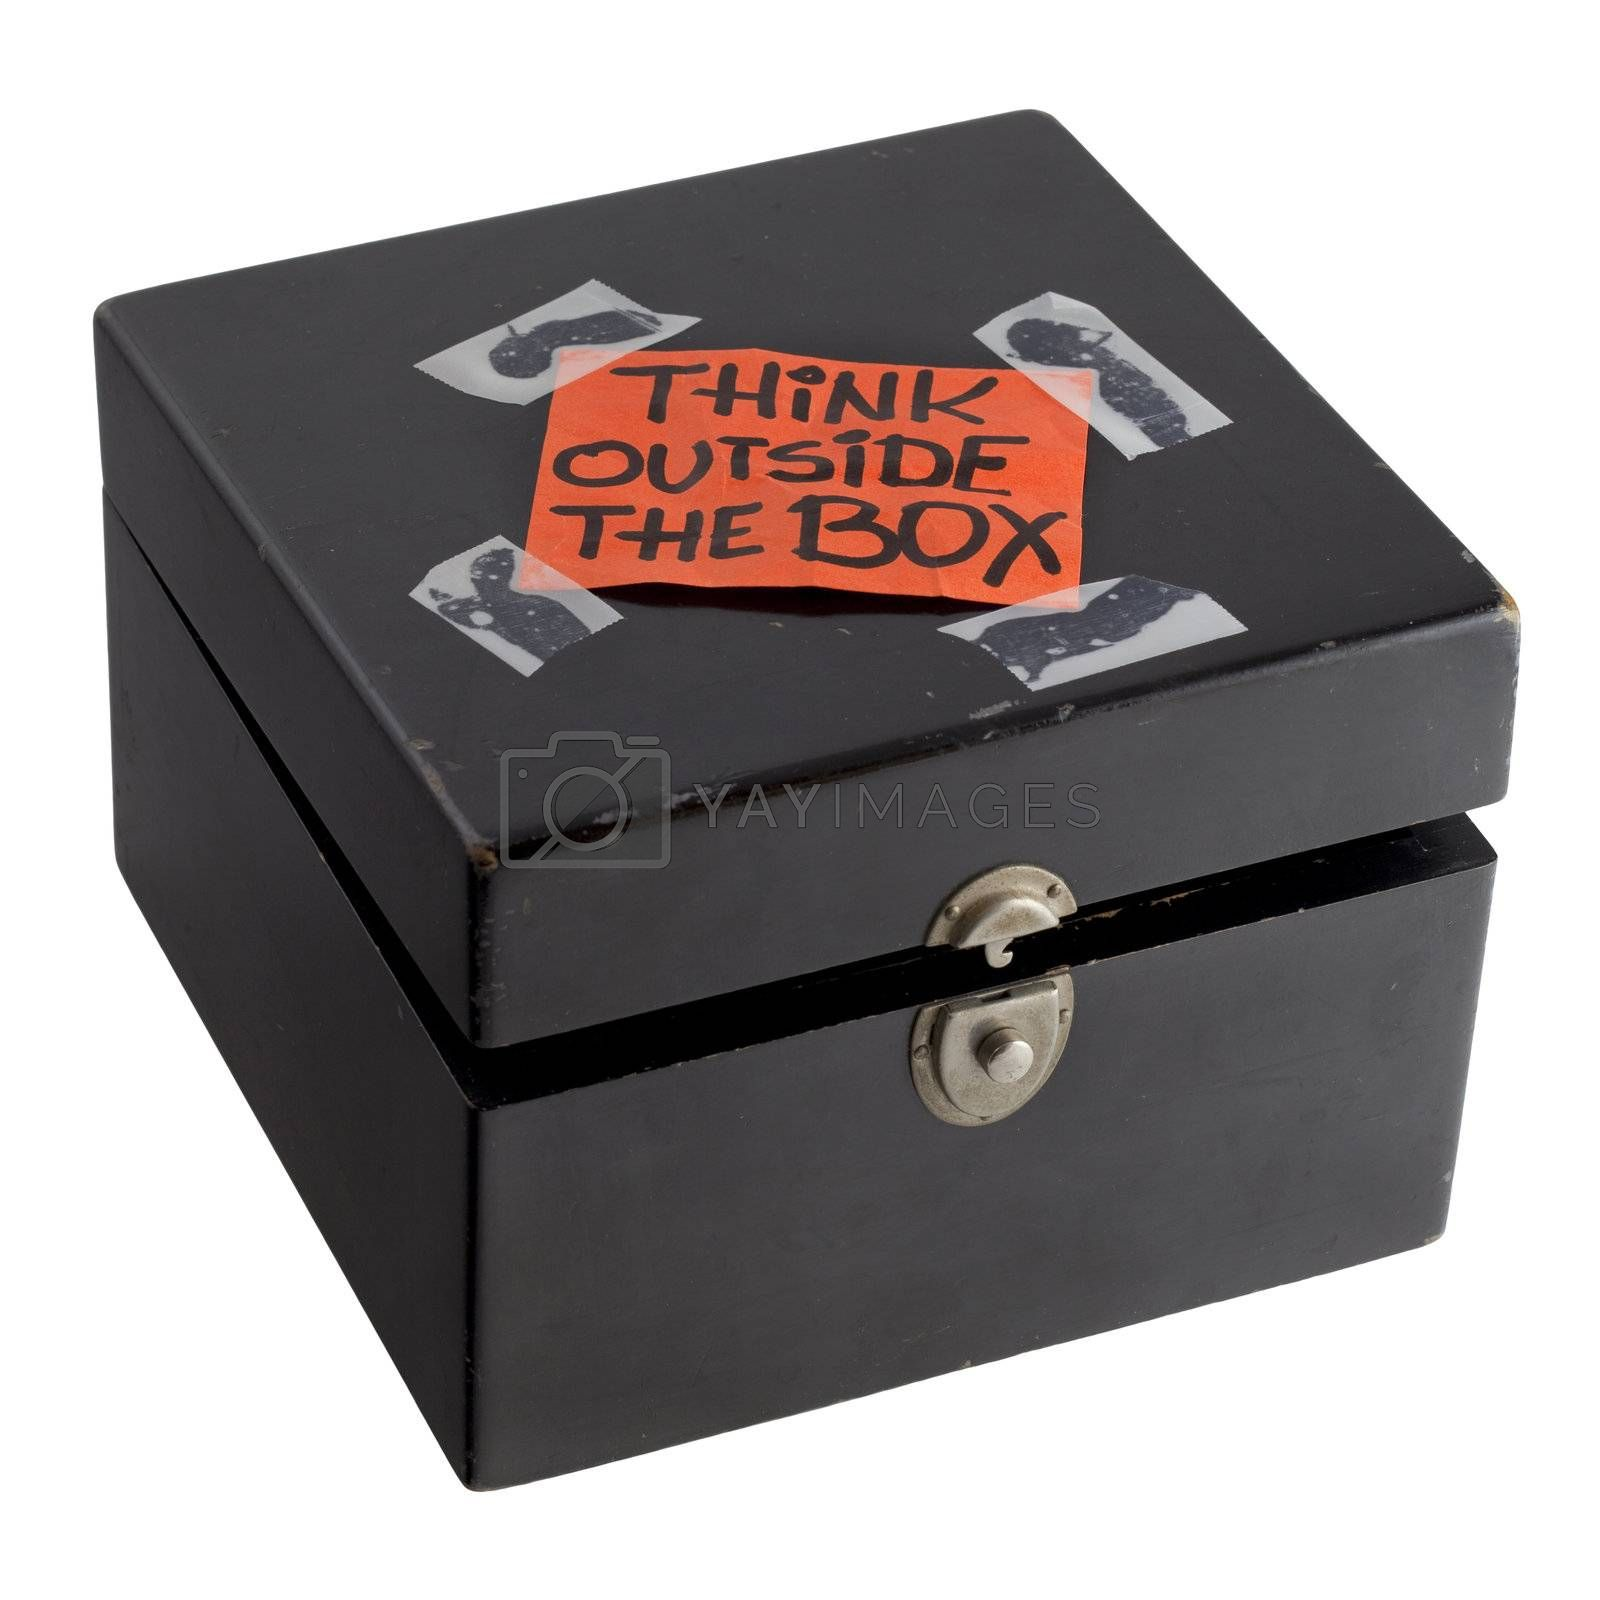 think outside the box concept or reminder by PixelsAway